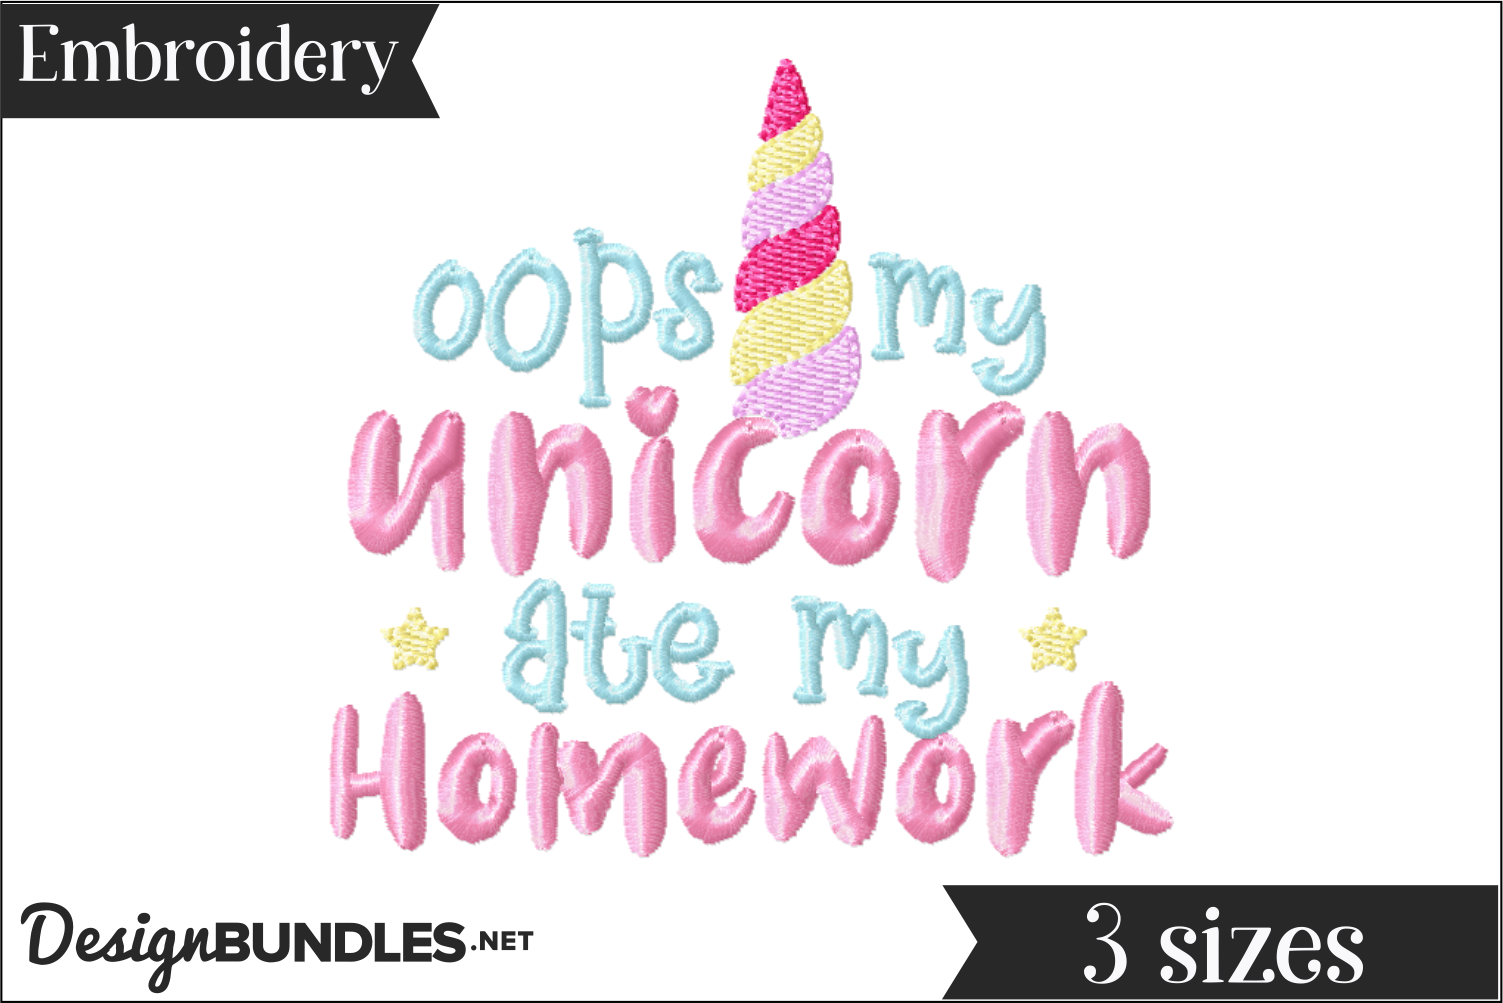 Oops a Unicorn ate my homework Embroidery Design example image 1